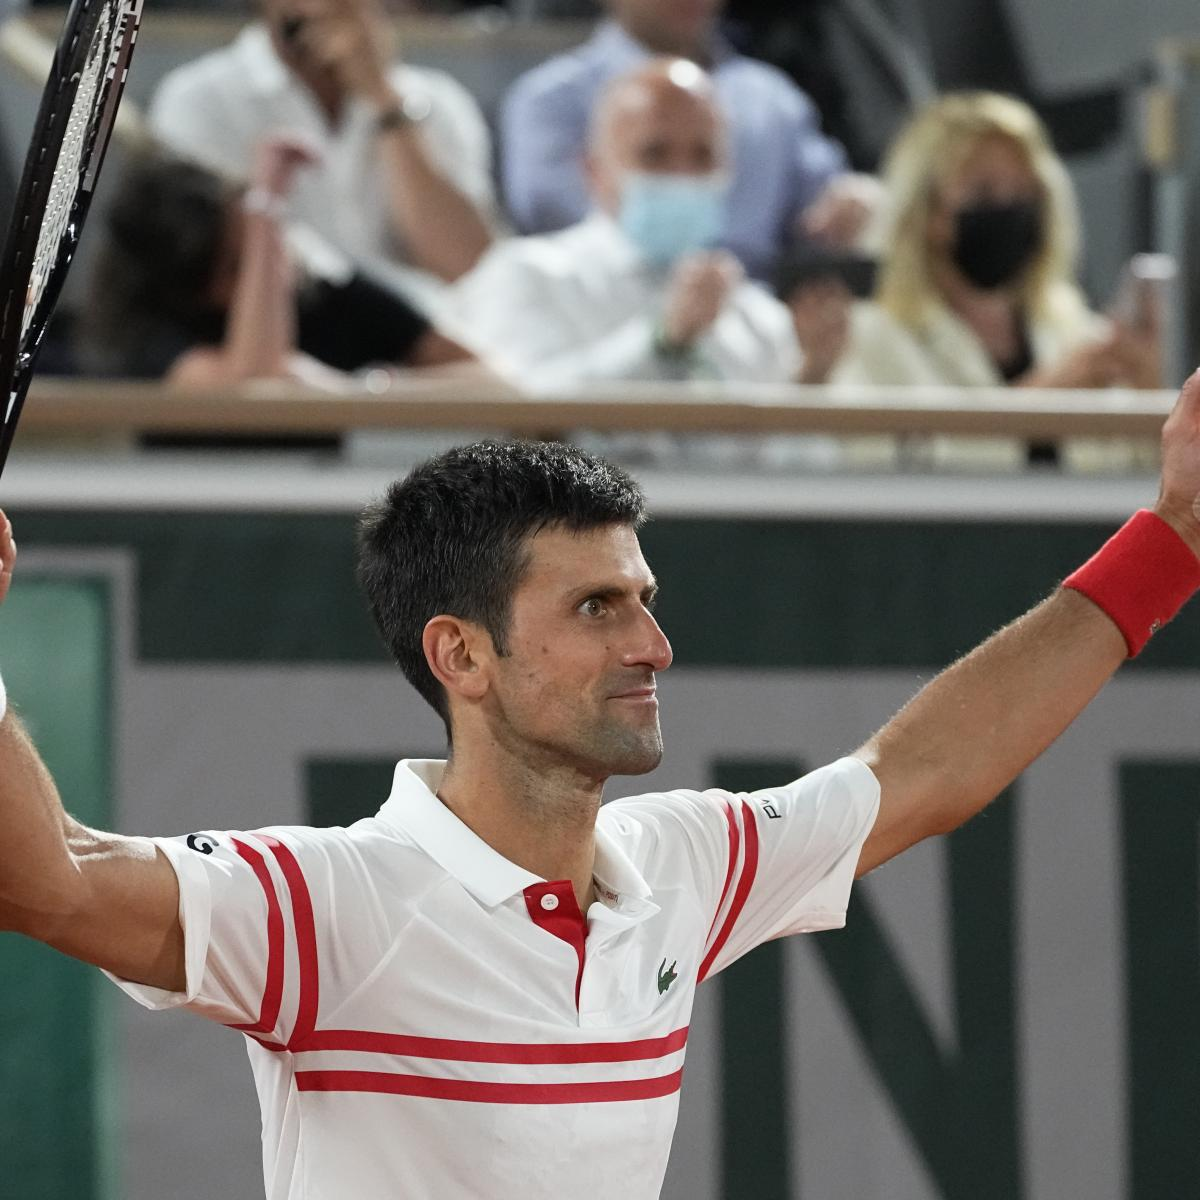 French Open 2021 Results: Friday Winners, Scores, Stats and Singles Draw Update